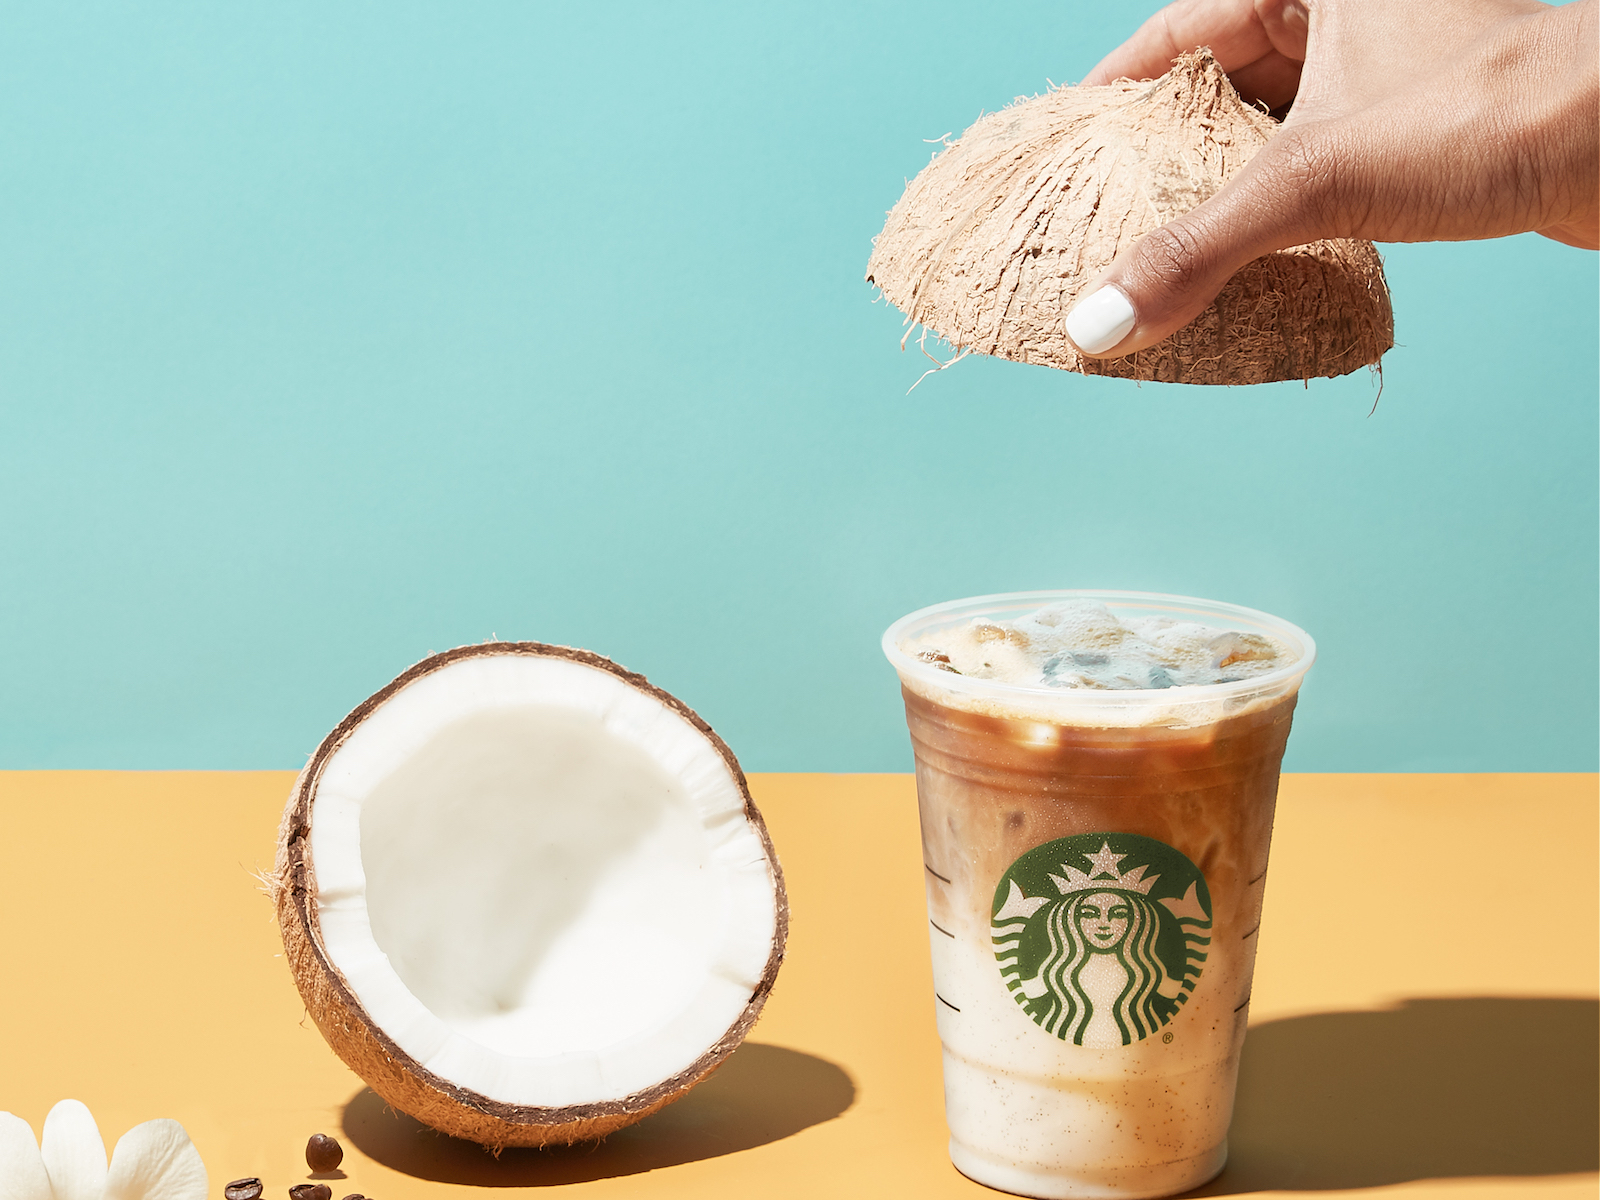 New Starbucks drinks